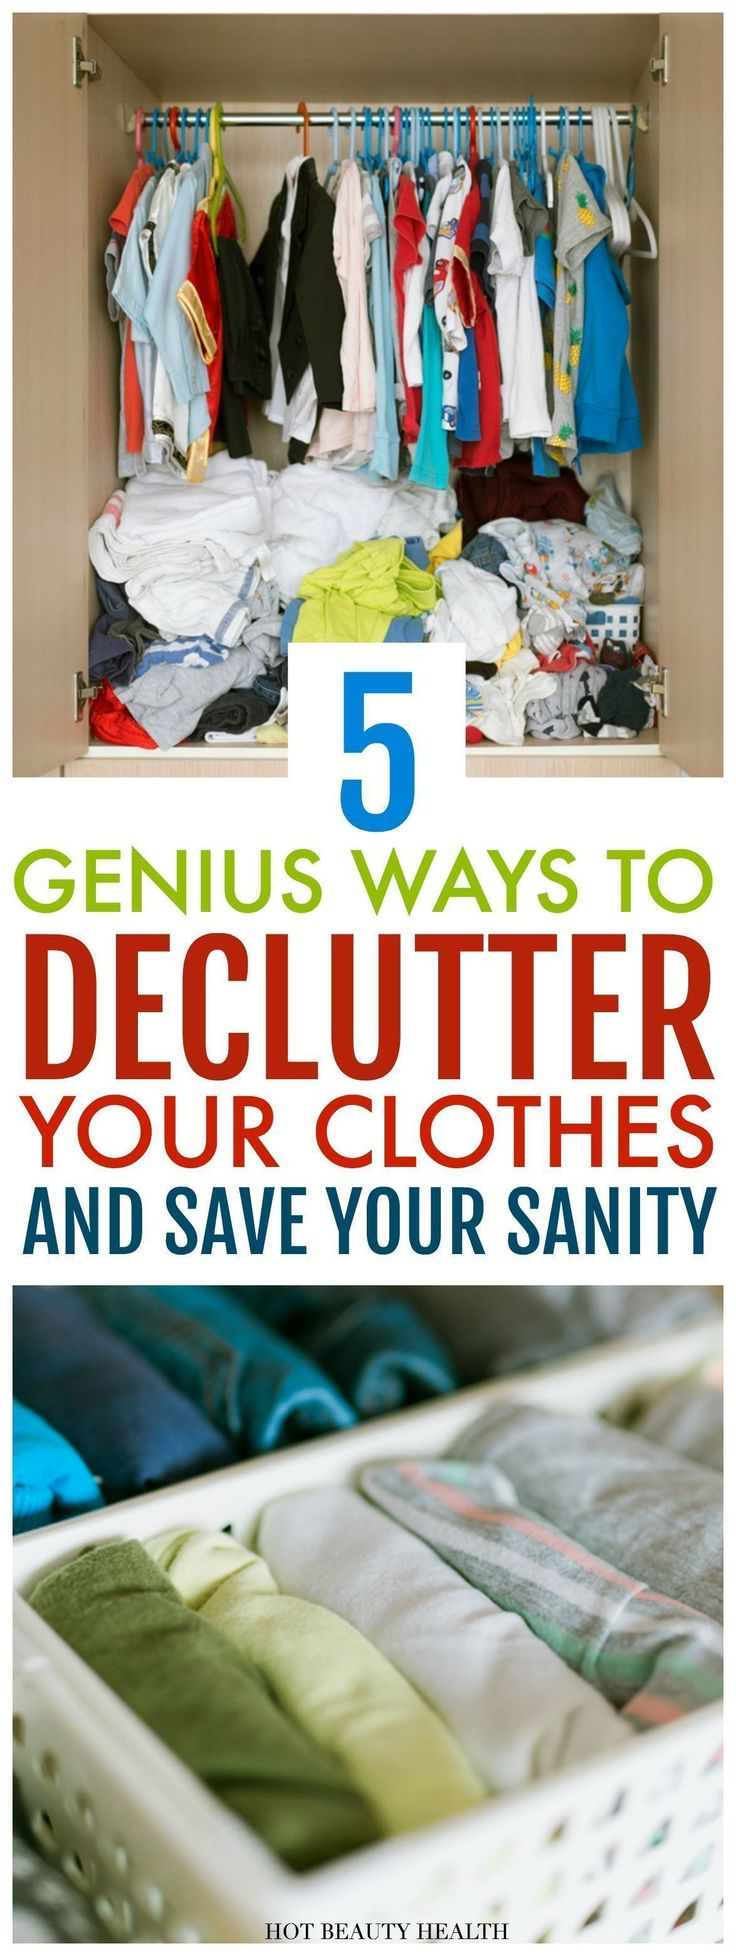 Looking for life-changing organization ideas for your closet? Here are 5 genius ways to declutter your clothes at home and save your sanity. These spring cleaning tips and questions will finally show you how to clean out your closet once and for all. Hot Beauty Health #organize #organizedcloset #declutter #organizingtips #closetideas #organizeyourlife #declutteryourlife